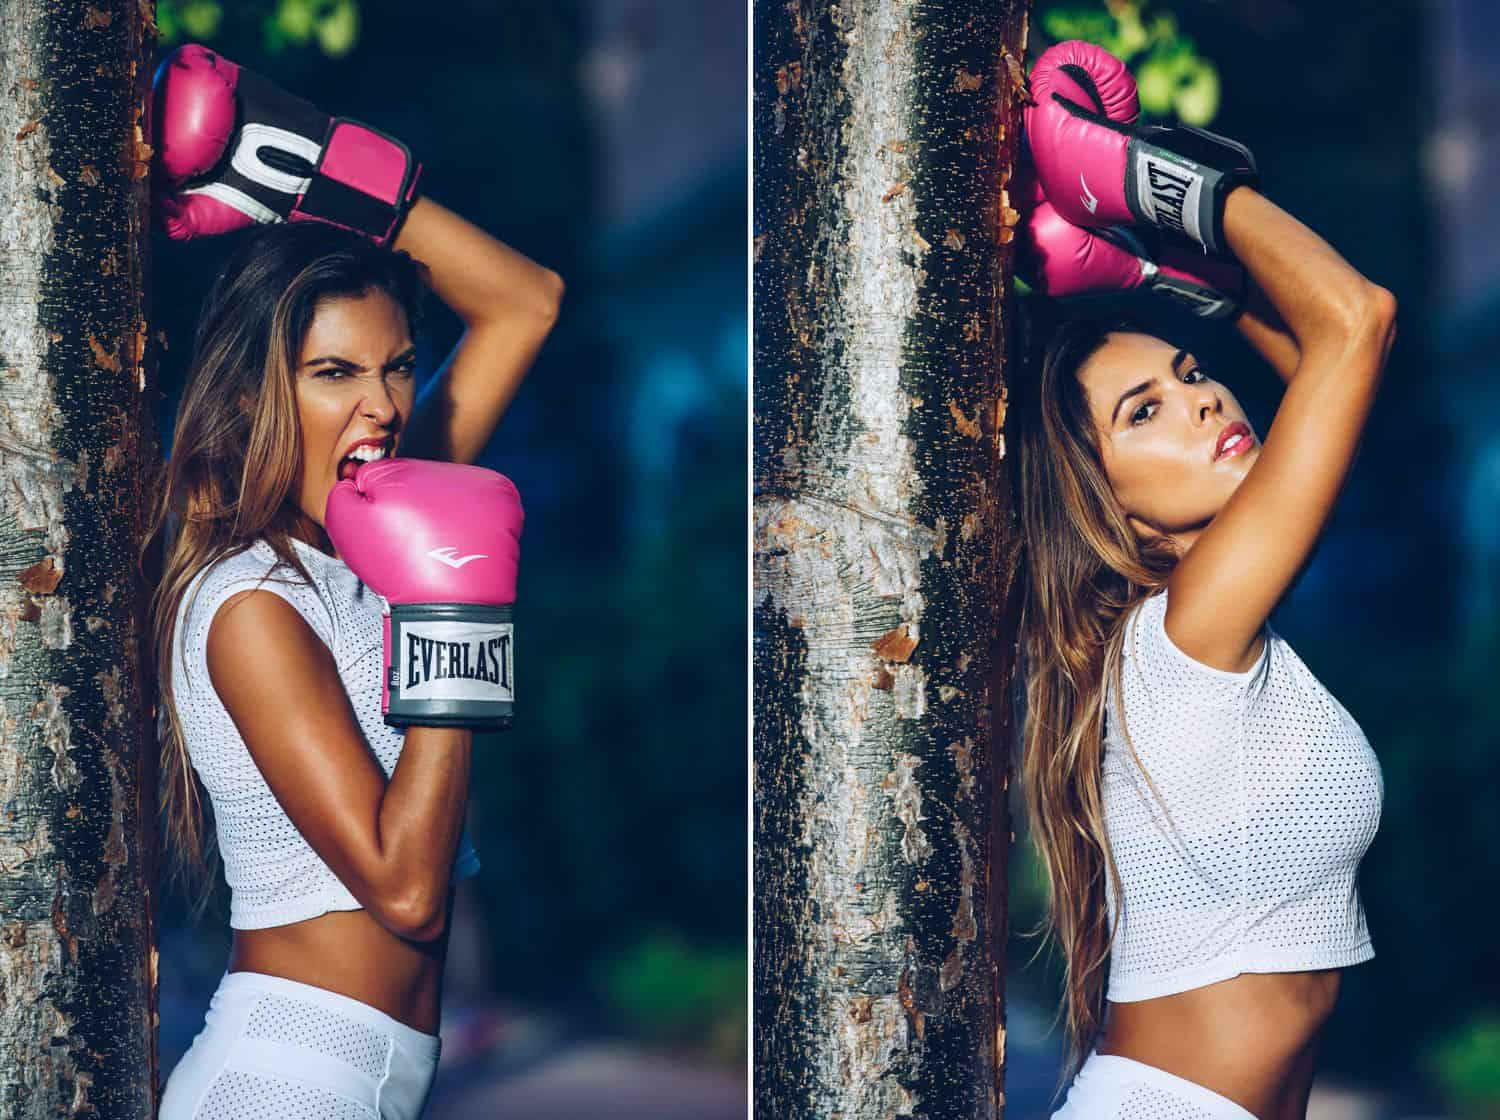 A Brazilian model wearing white workout attire poses with bright pink boxing gloves